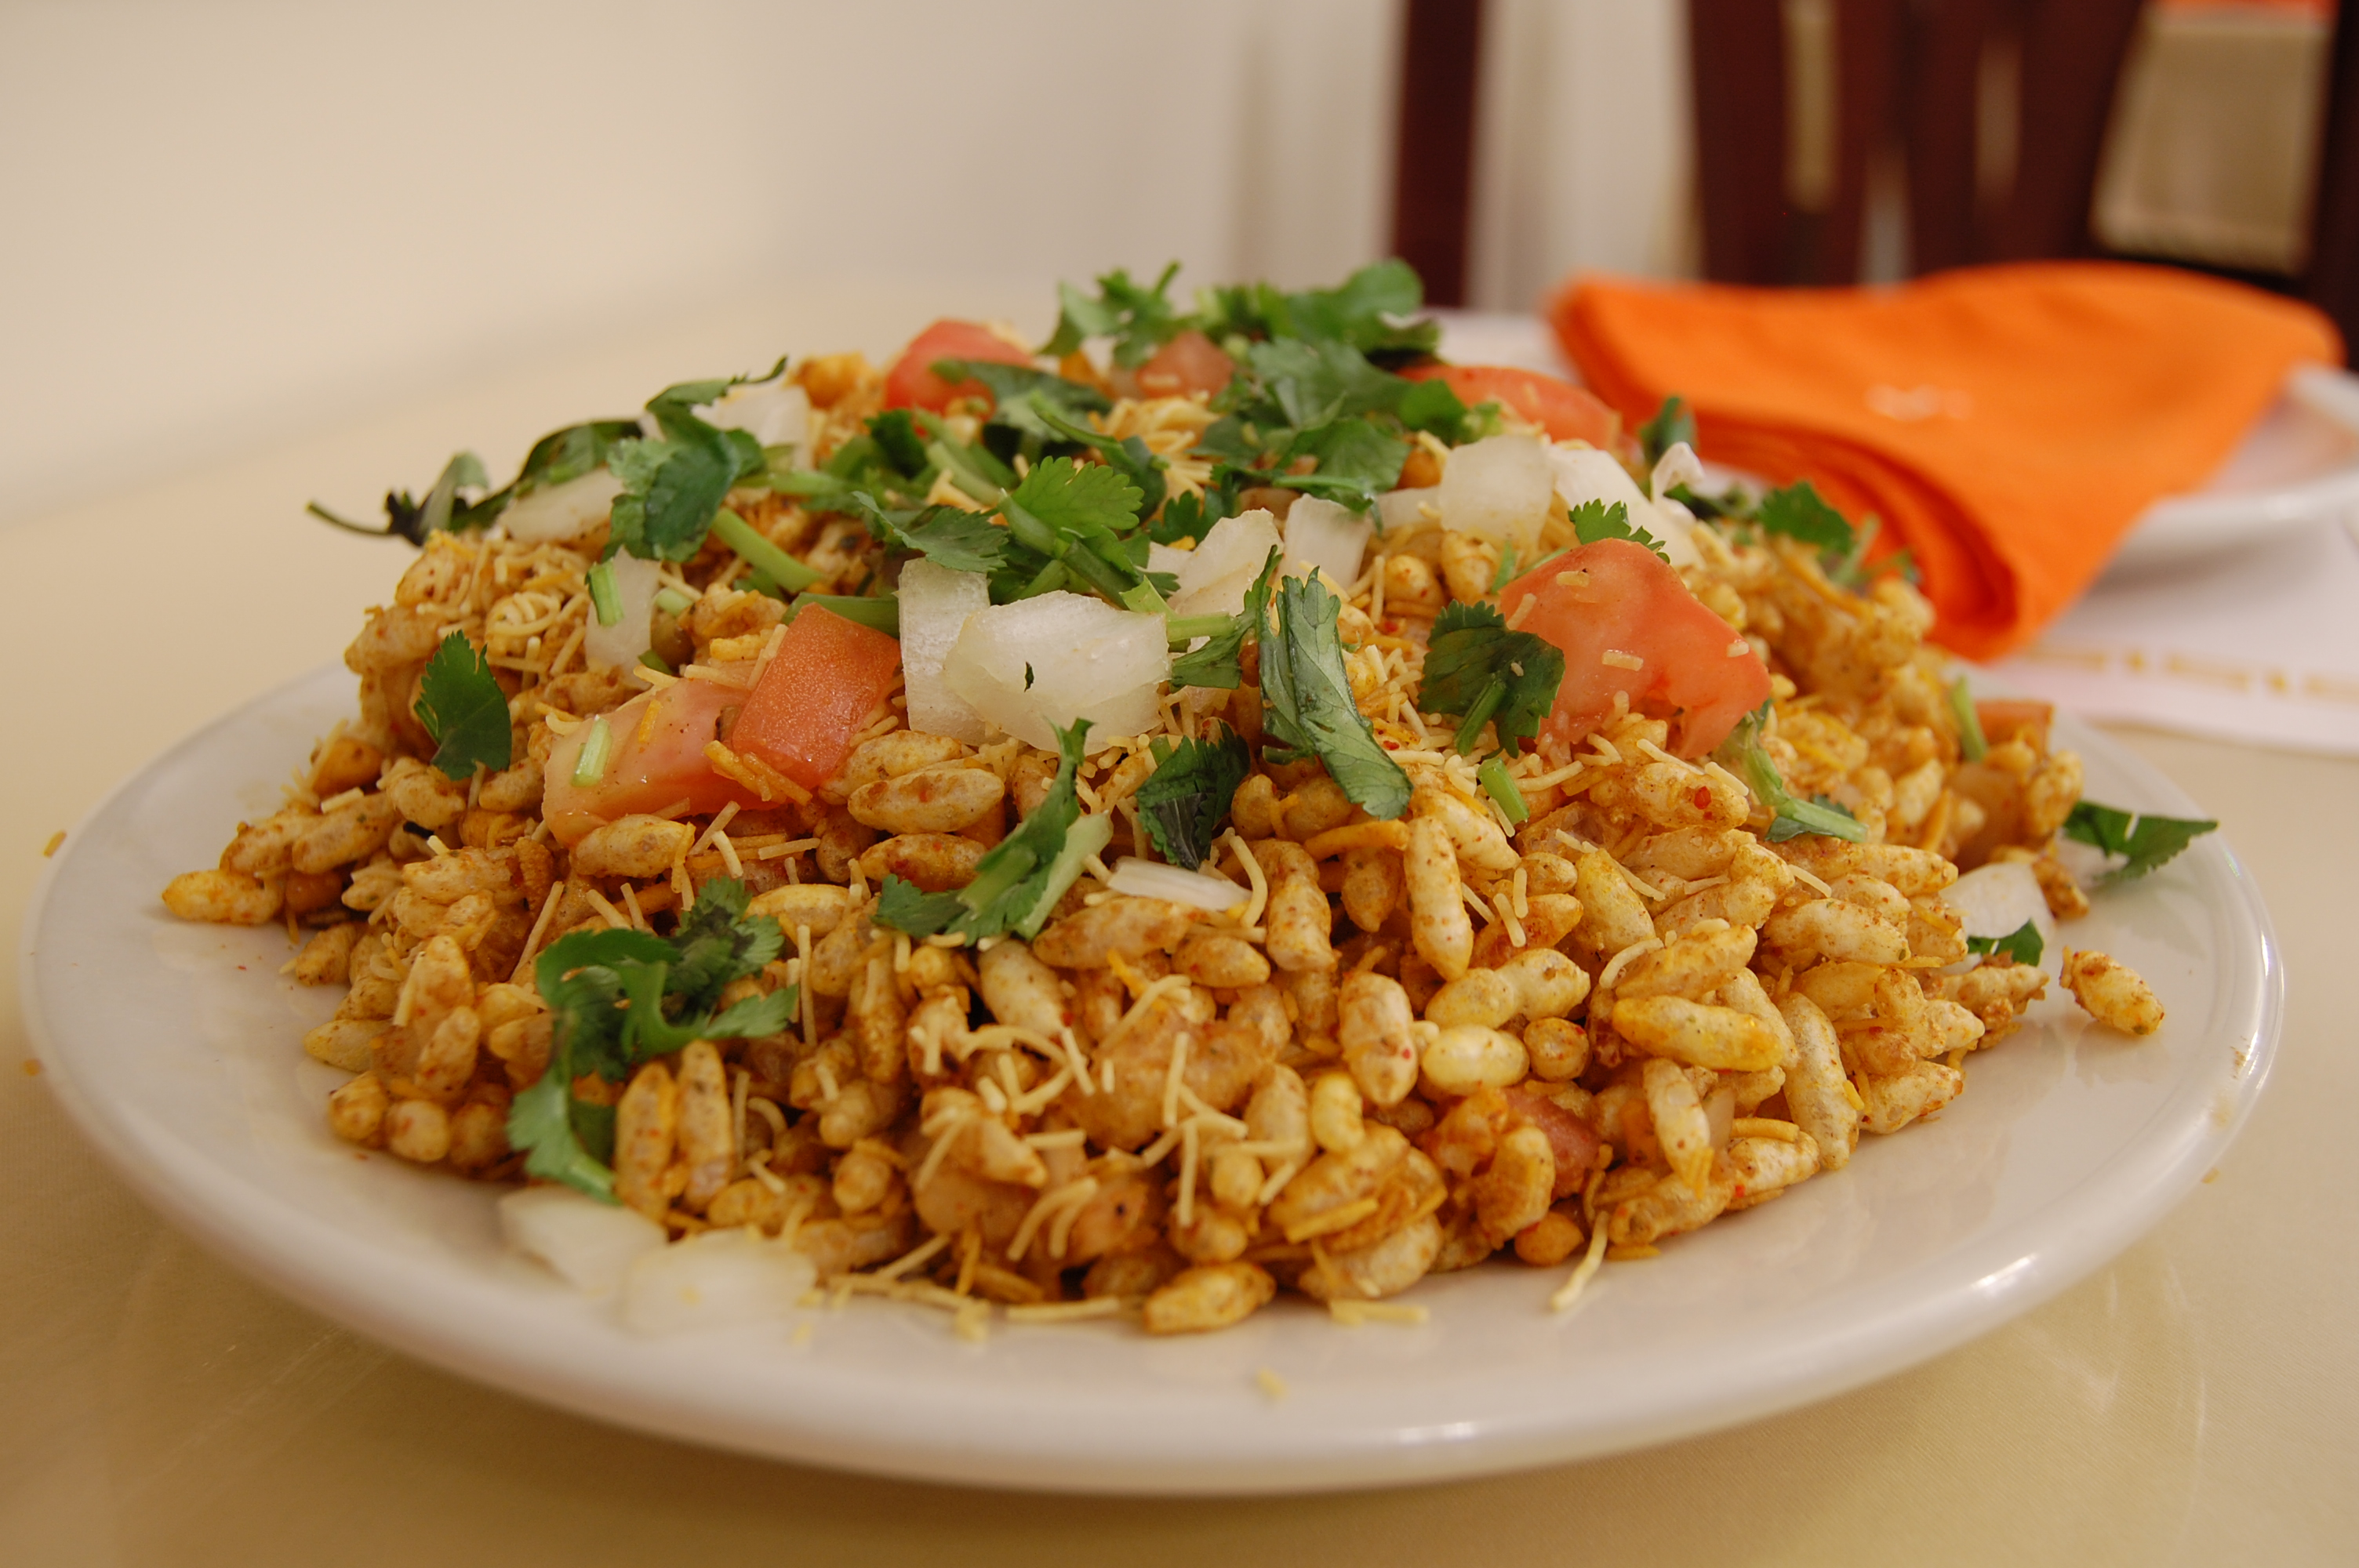 http://upload.wikimedia.org/wikipedia/commons/2/20/Indian_cuisine-Chaat-Bhelpuri-03.jpg